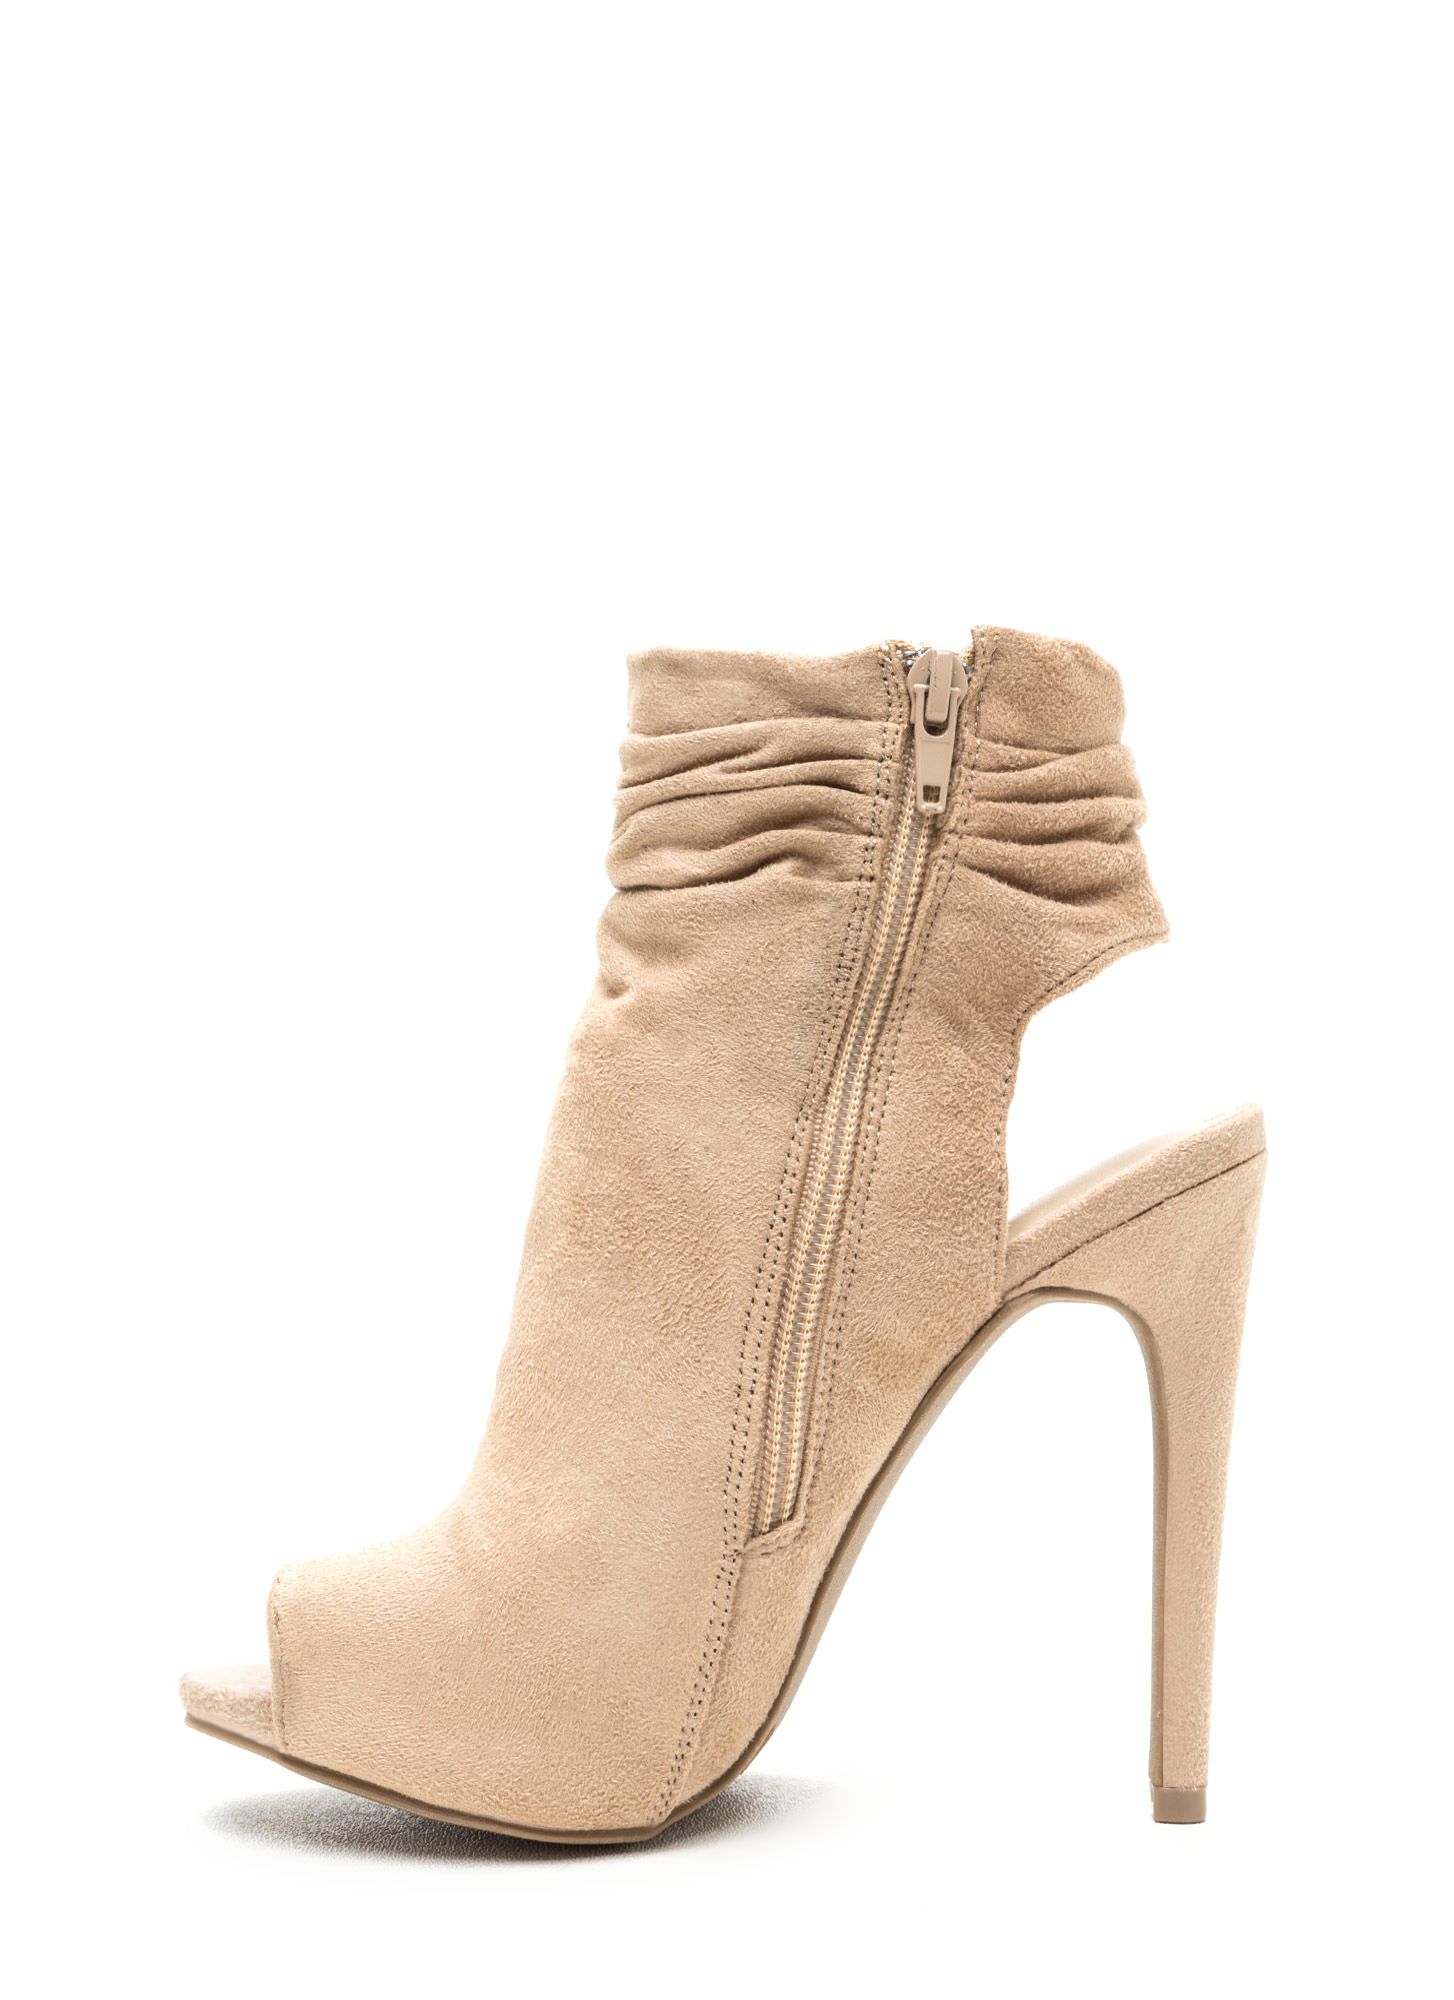 Undeniable Style Faux Suede Booties NATURAL